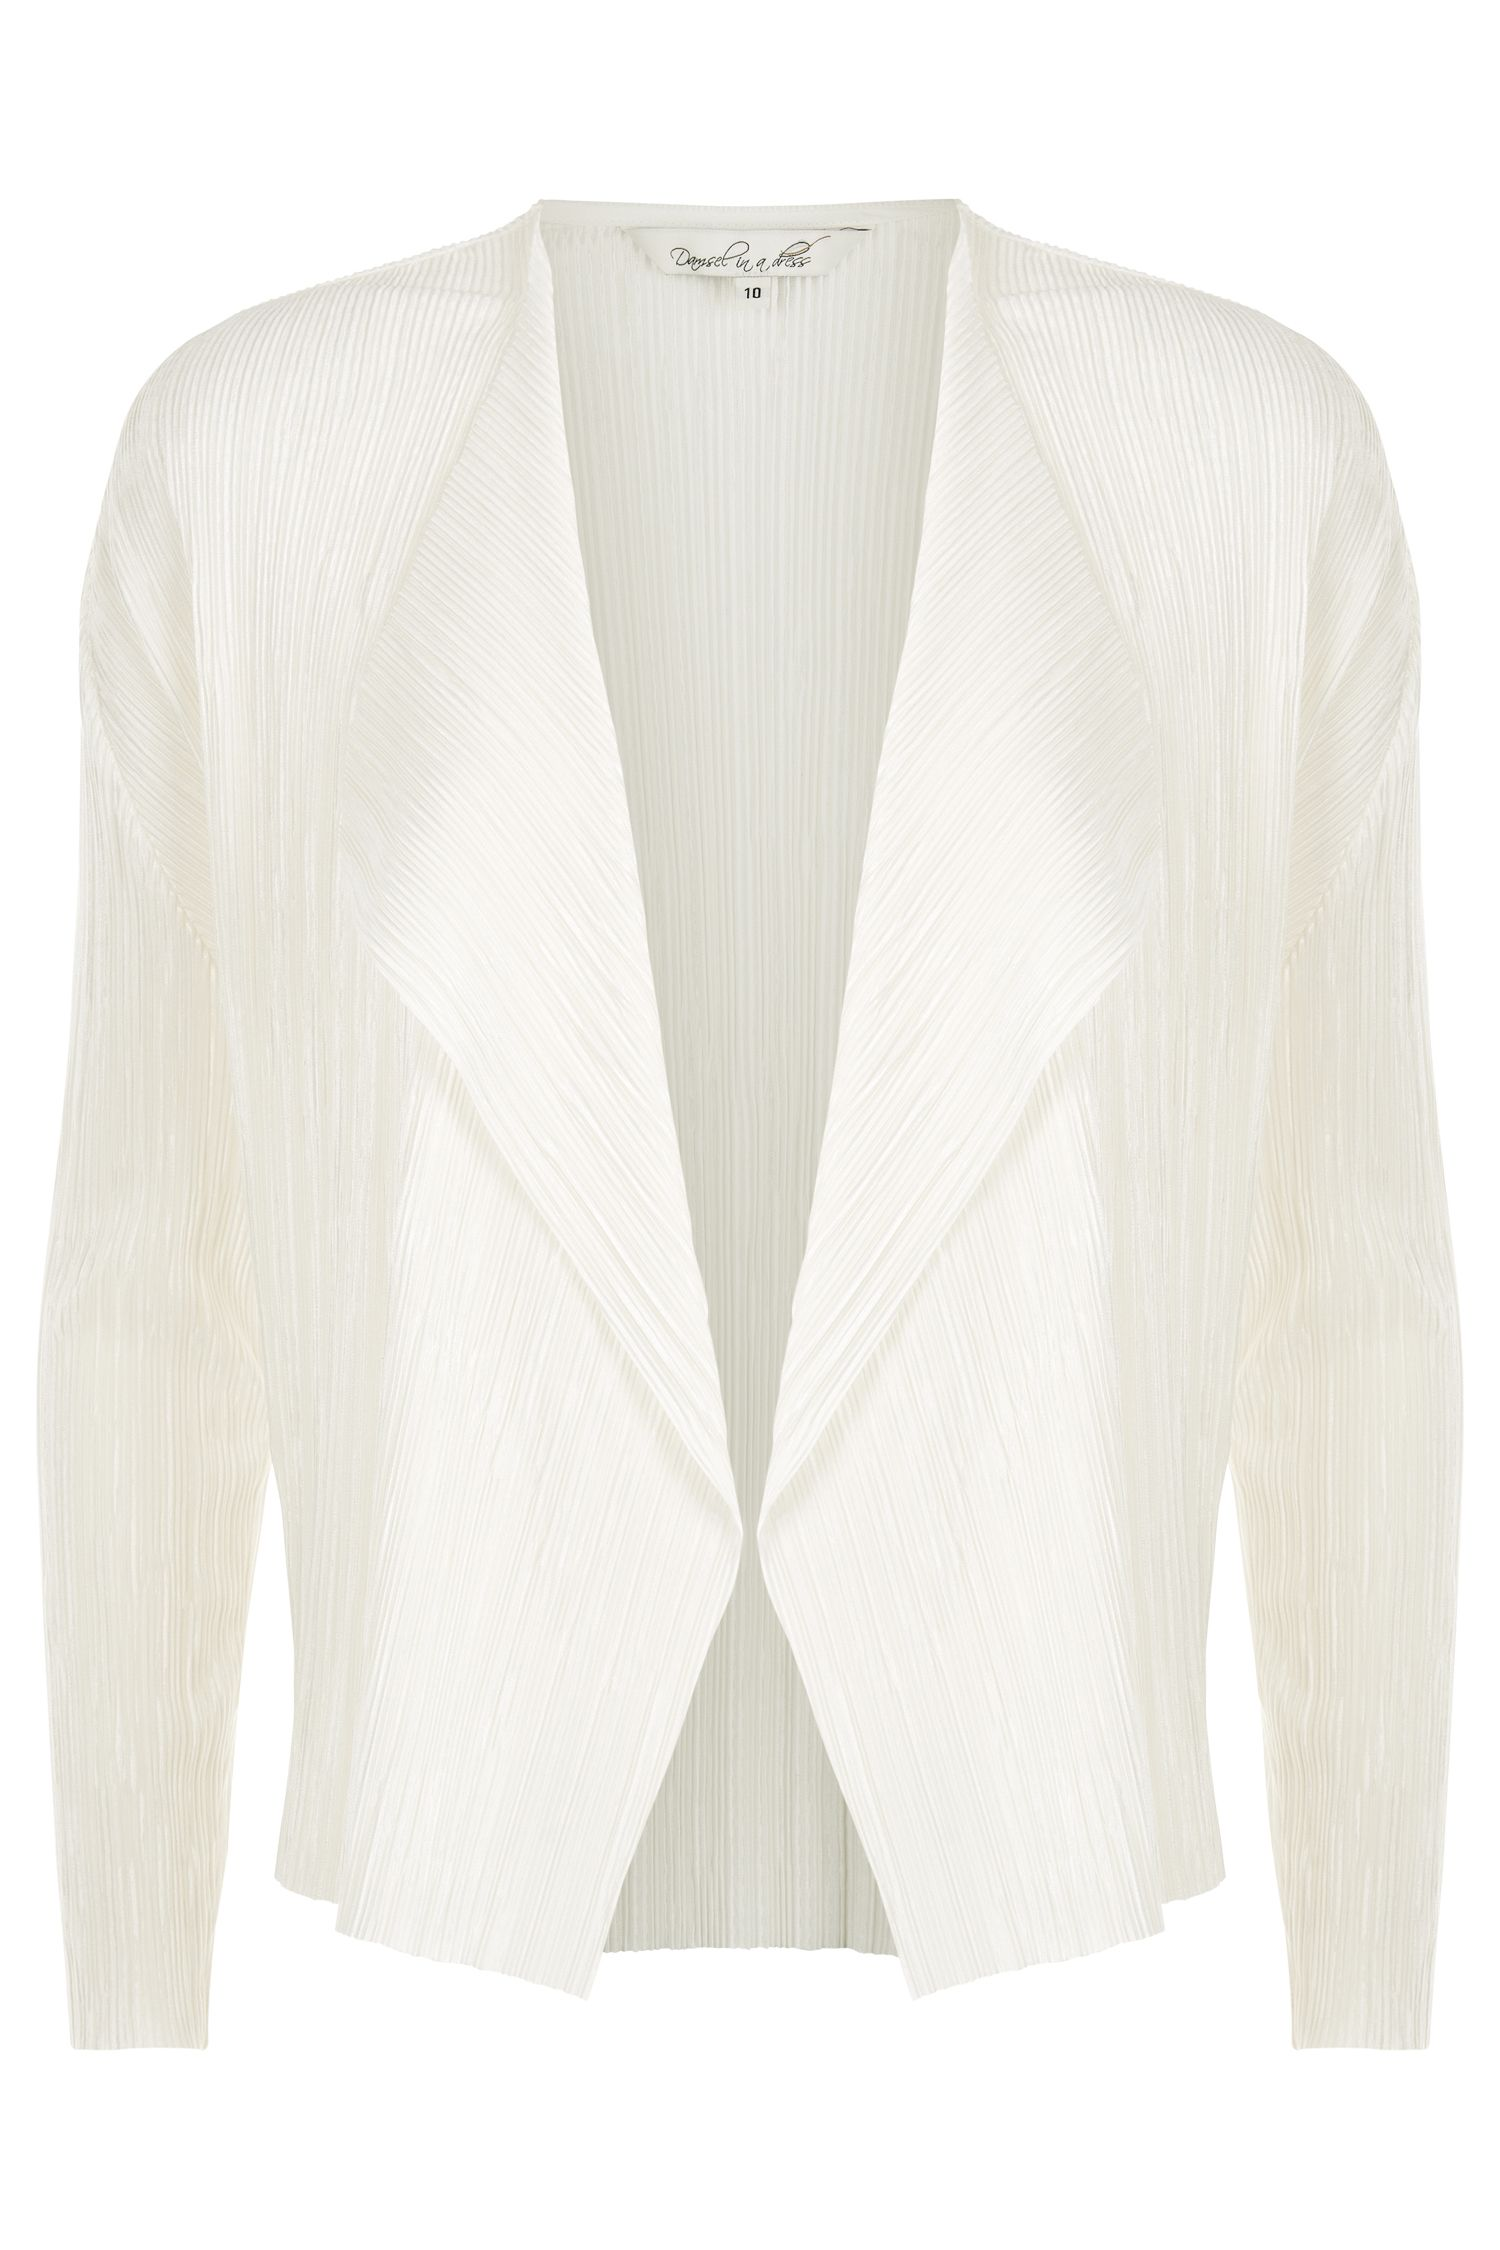 Damsel in a Dress Issy Jacket, White